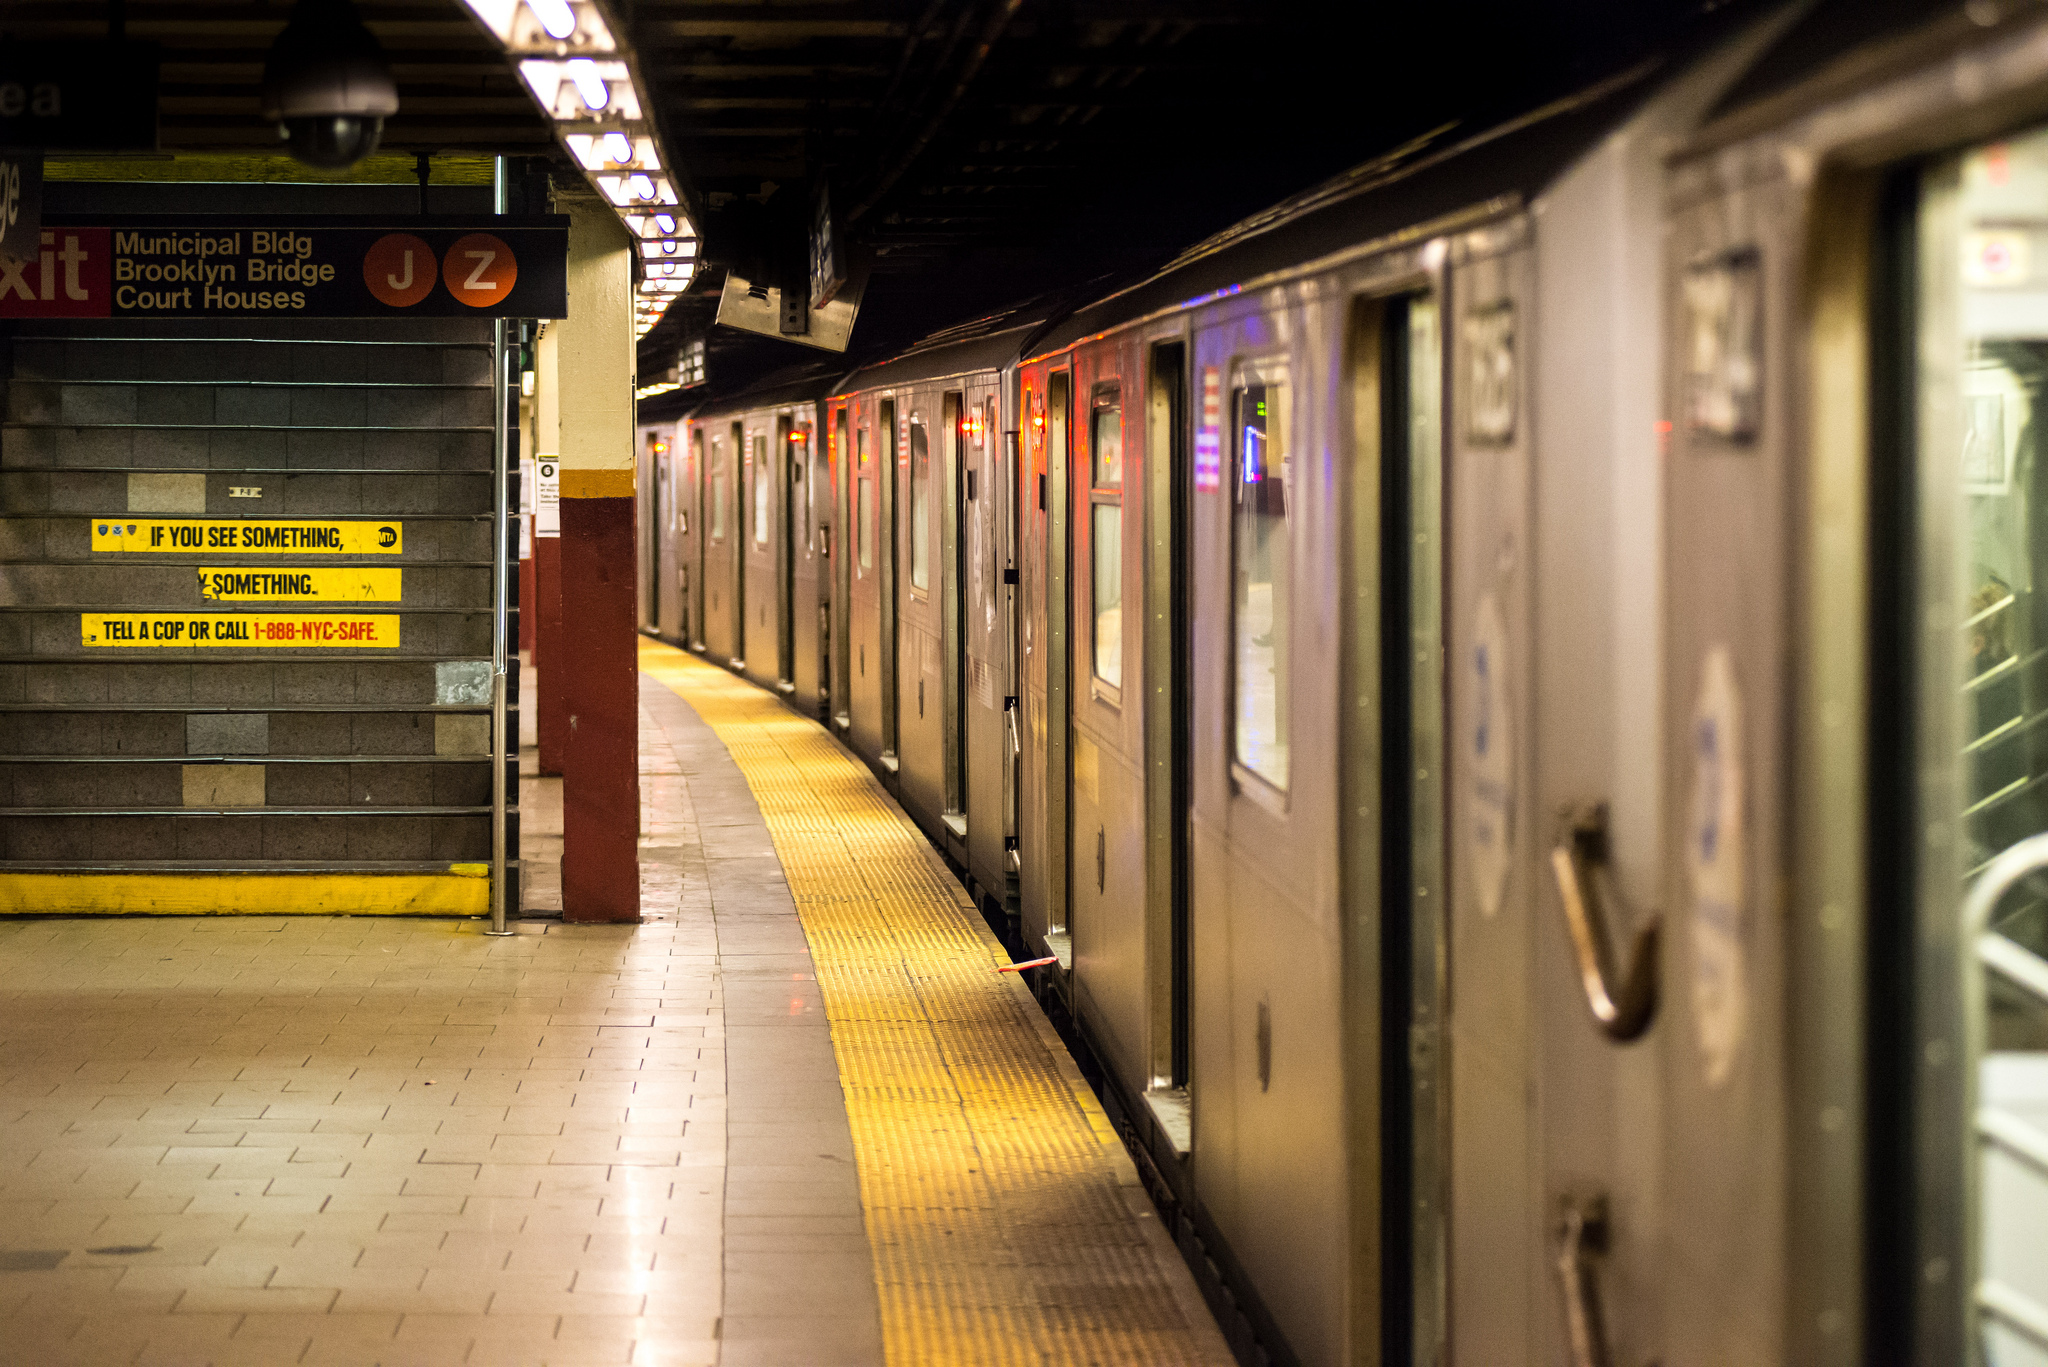 Governor Cuomo and the MTA announce a competition to fix the NYC subway system